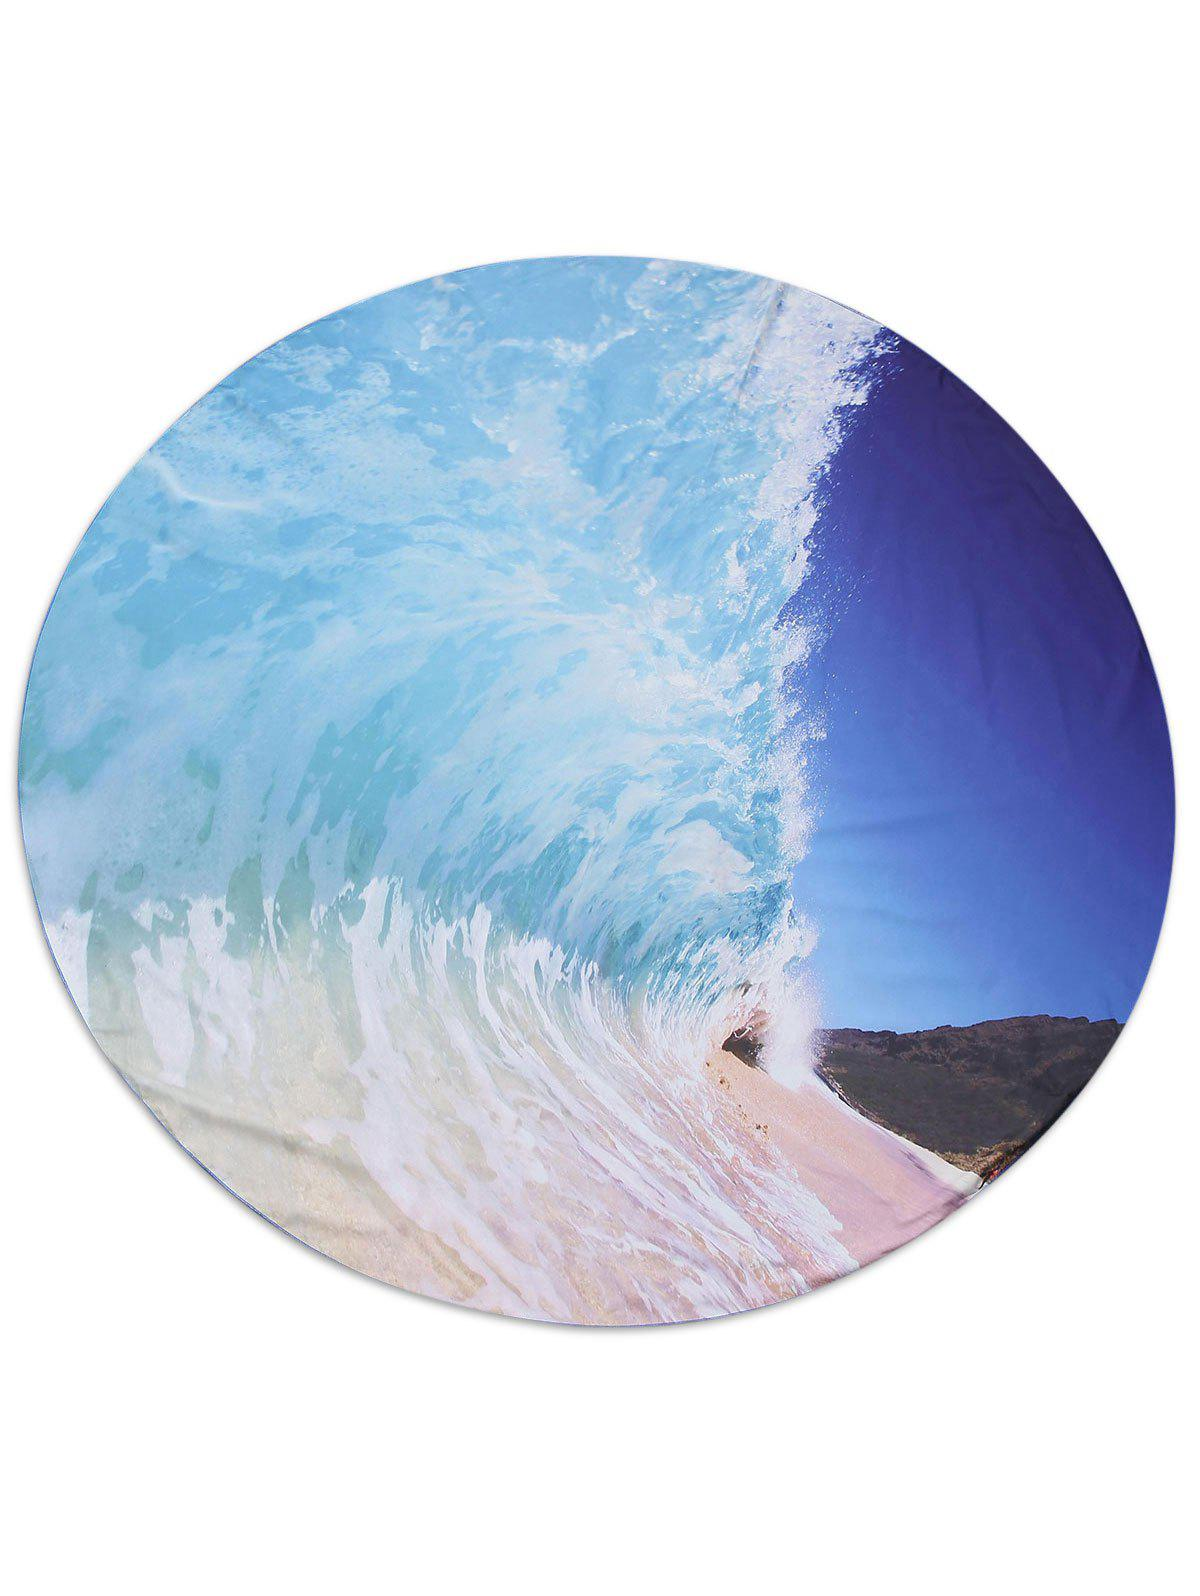 Round Fabric Sea Wave Print Beach Throw - ICE BLUE 150*150CM